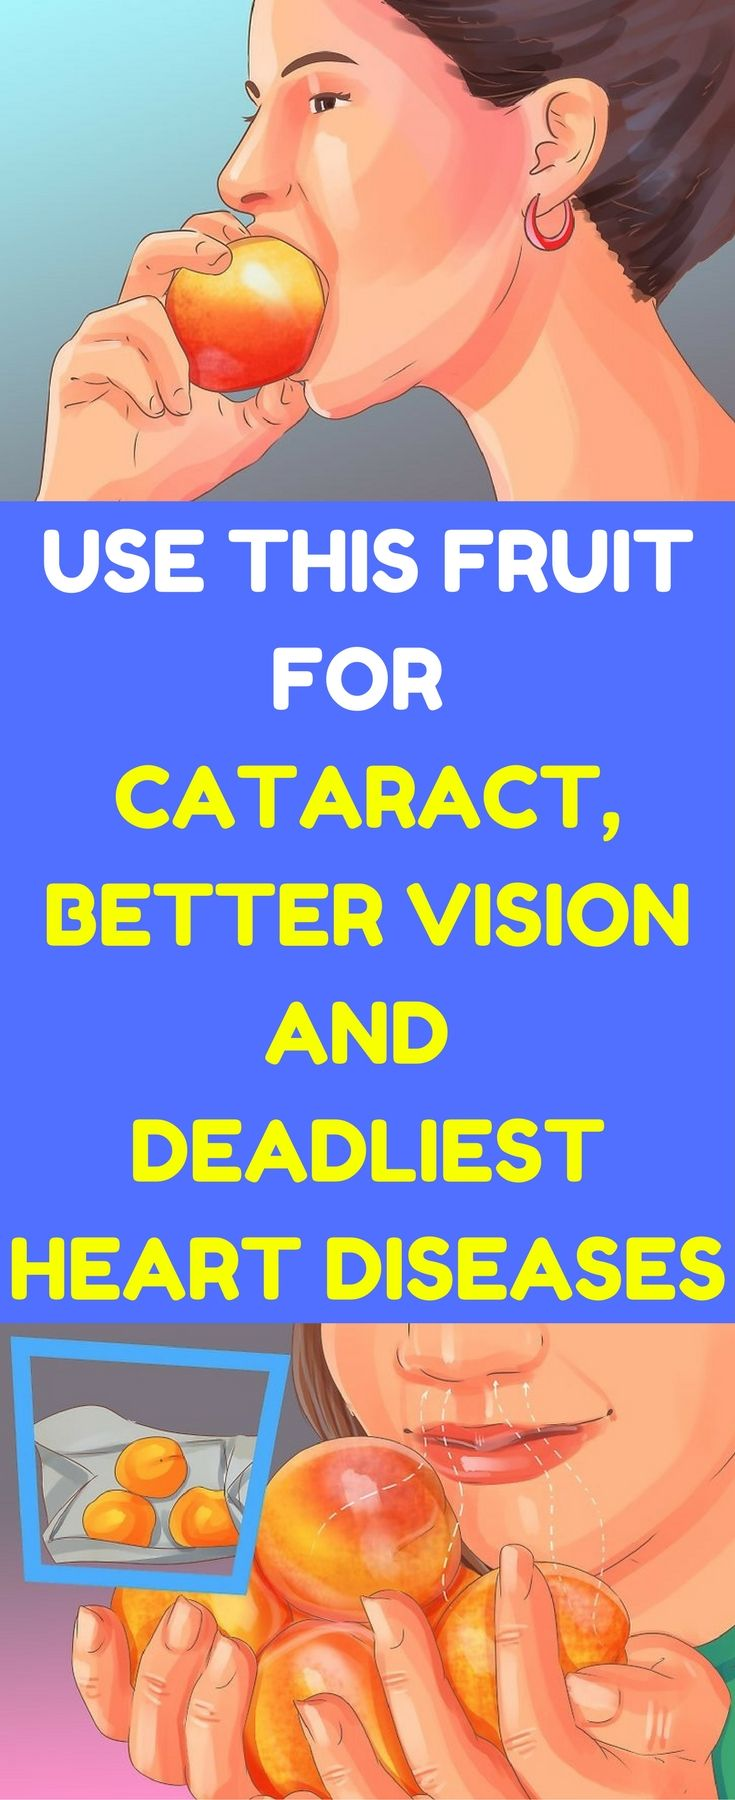 This fruit eliminates cataract, improves vision and helps with deadliest heart diseases.